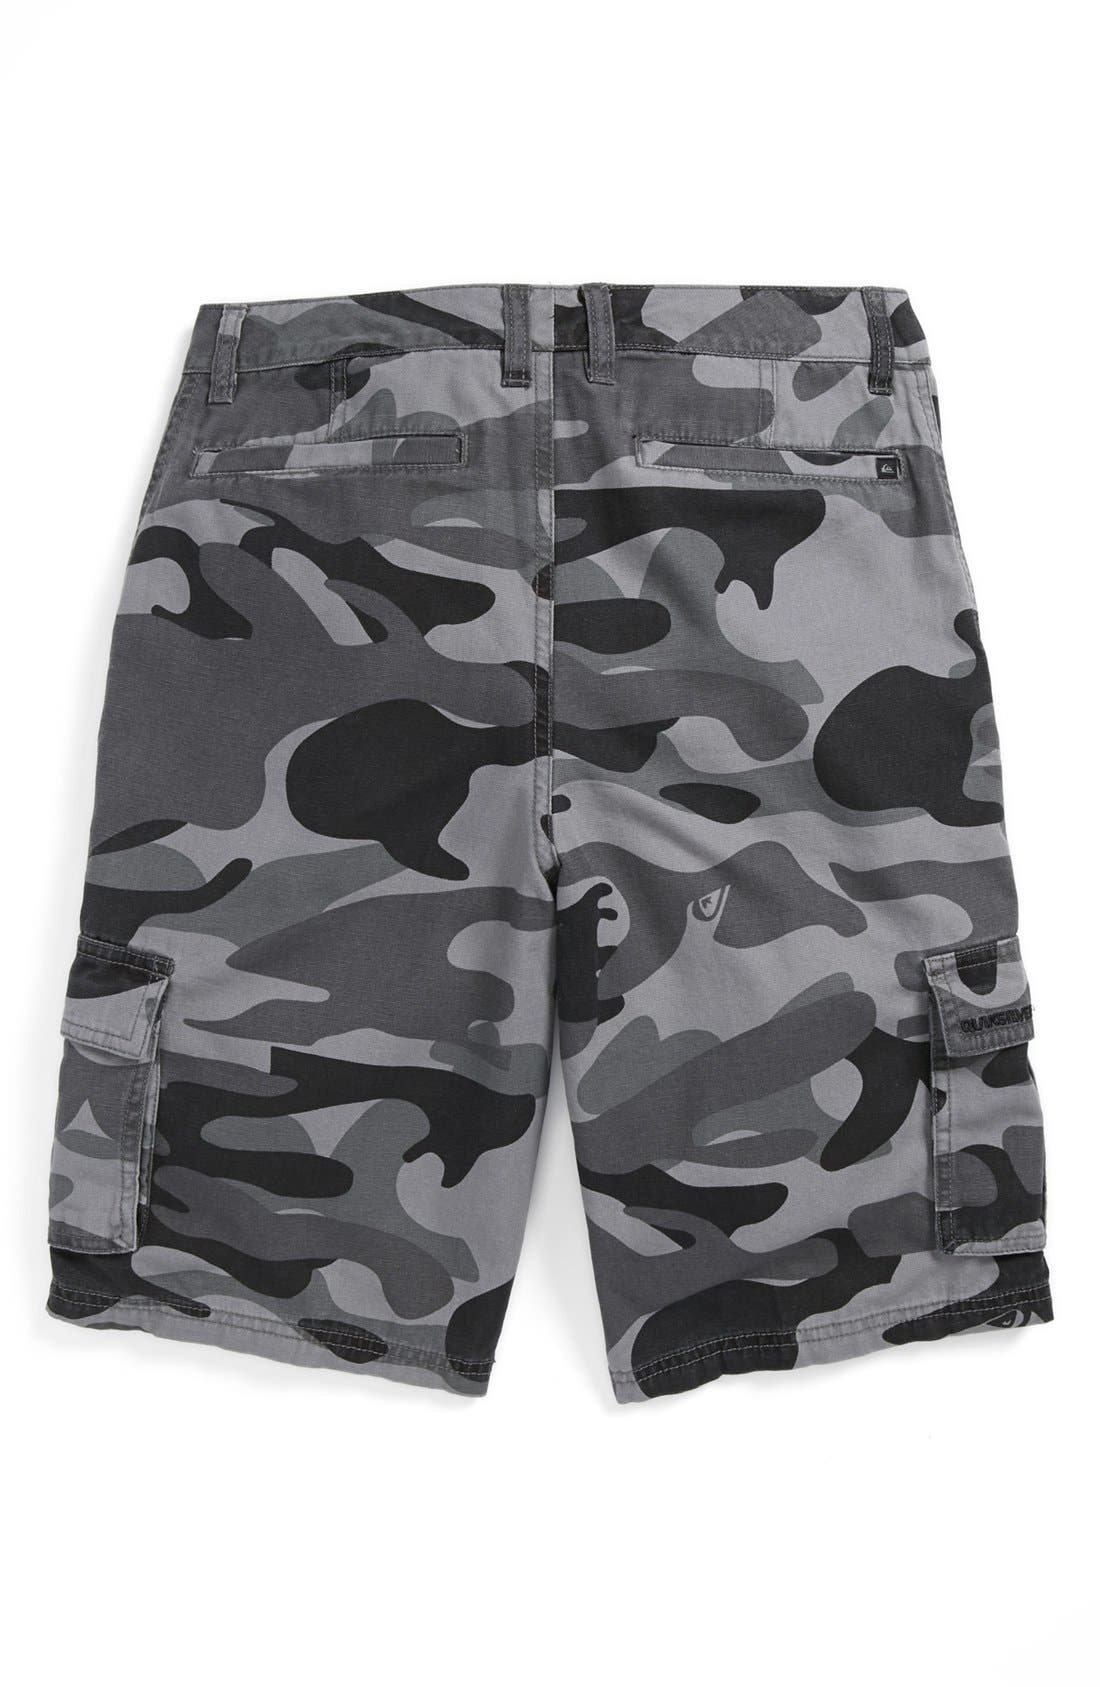 Alternate Image 2  - Quiksilver 'Sue Fley' Camo Shorts (Big Boys)